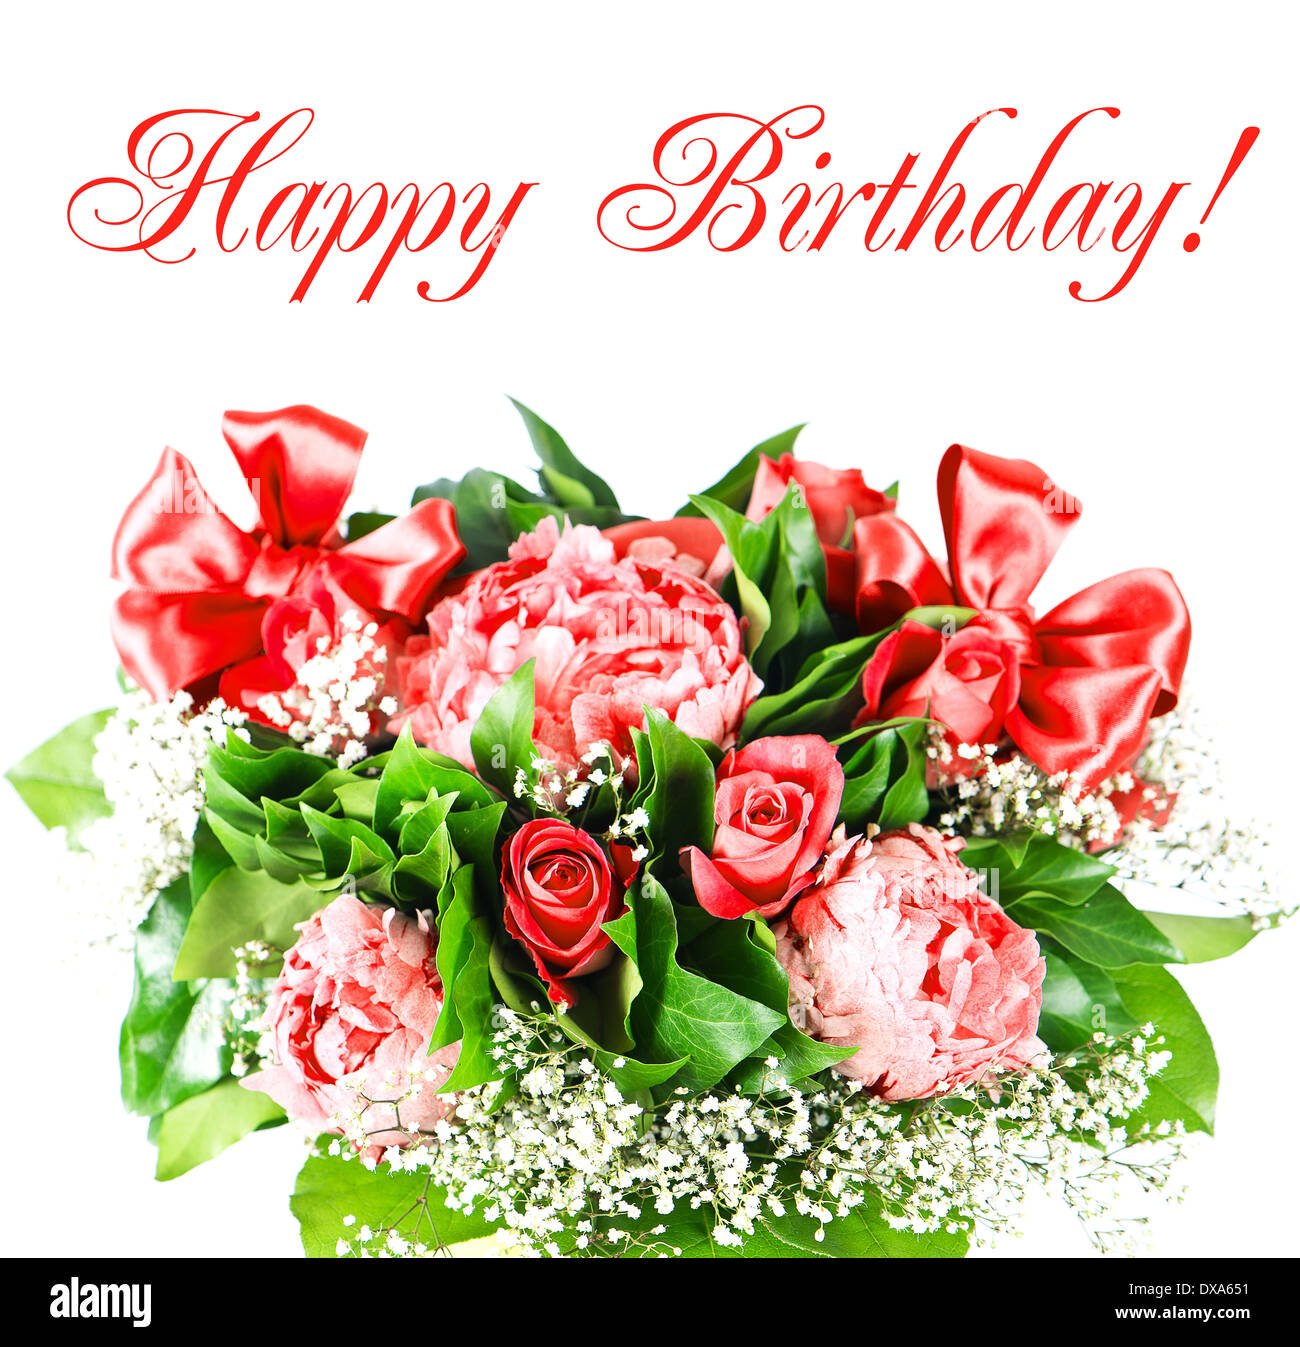 Happy birthday card concept peony and roses flowers stock photo happy birthday card concept peony and roses flowers izmirmasajfo